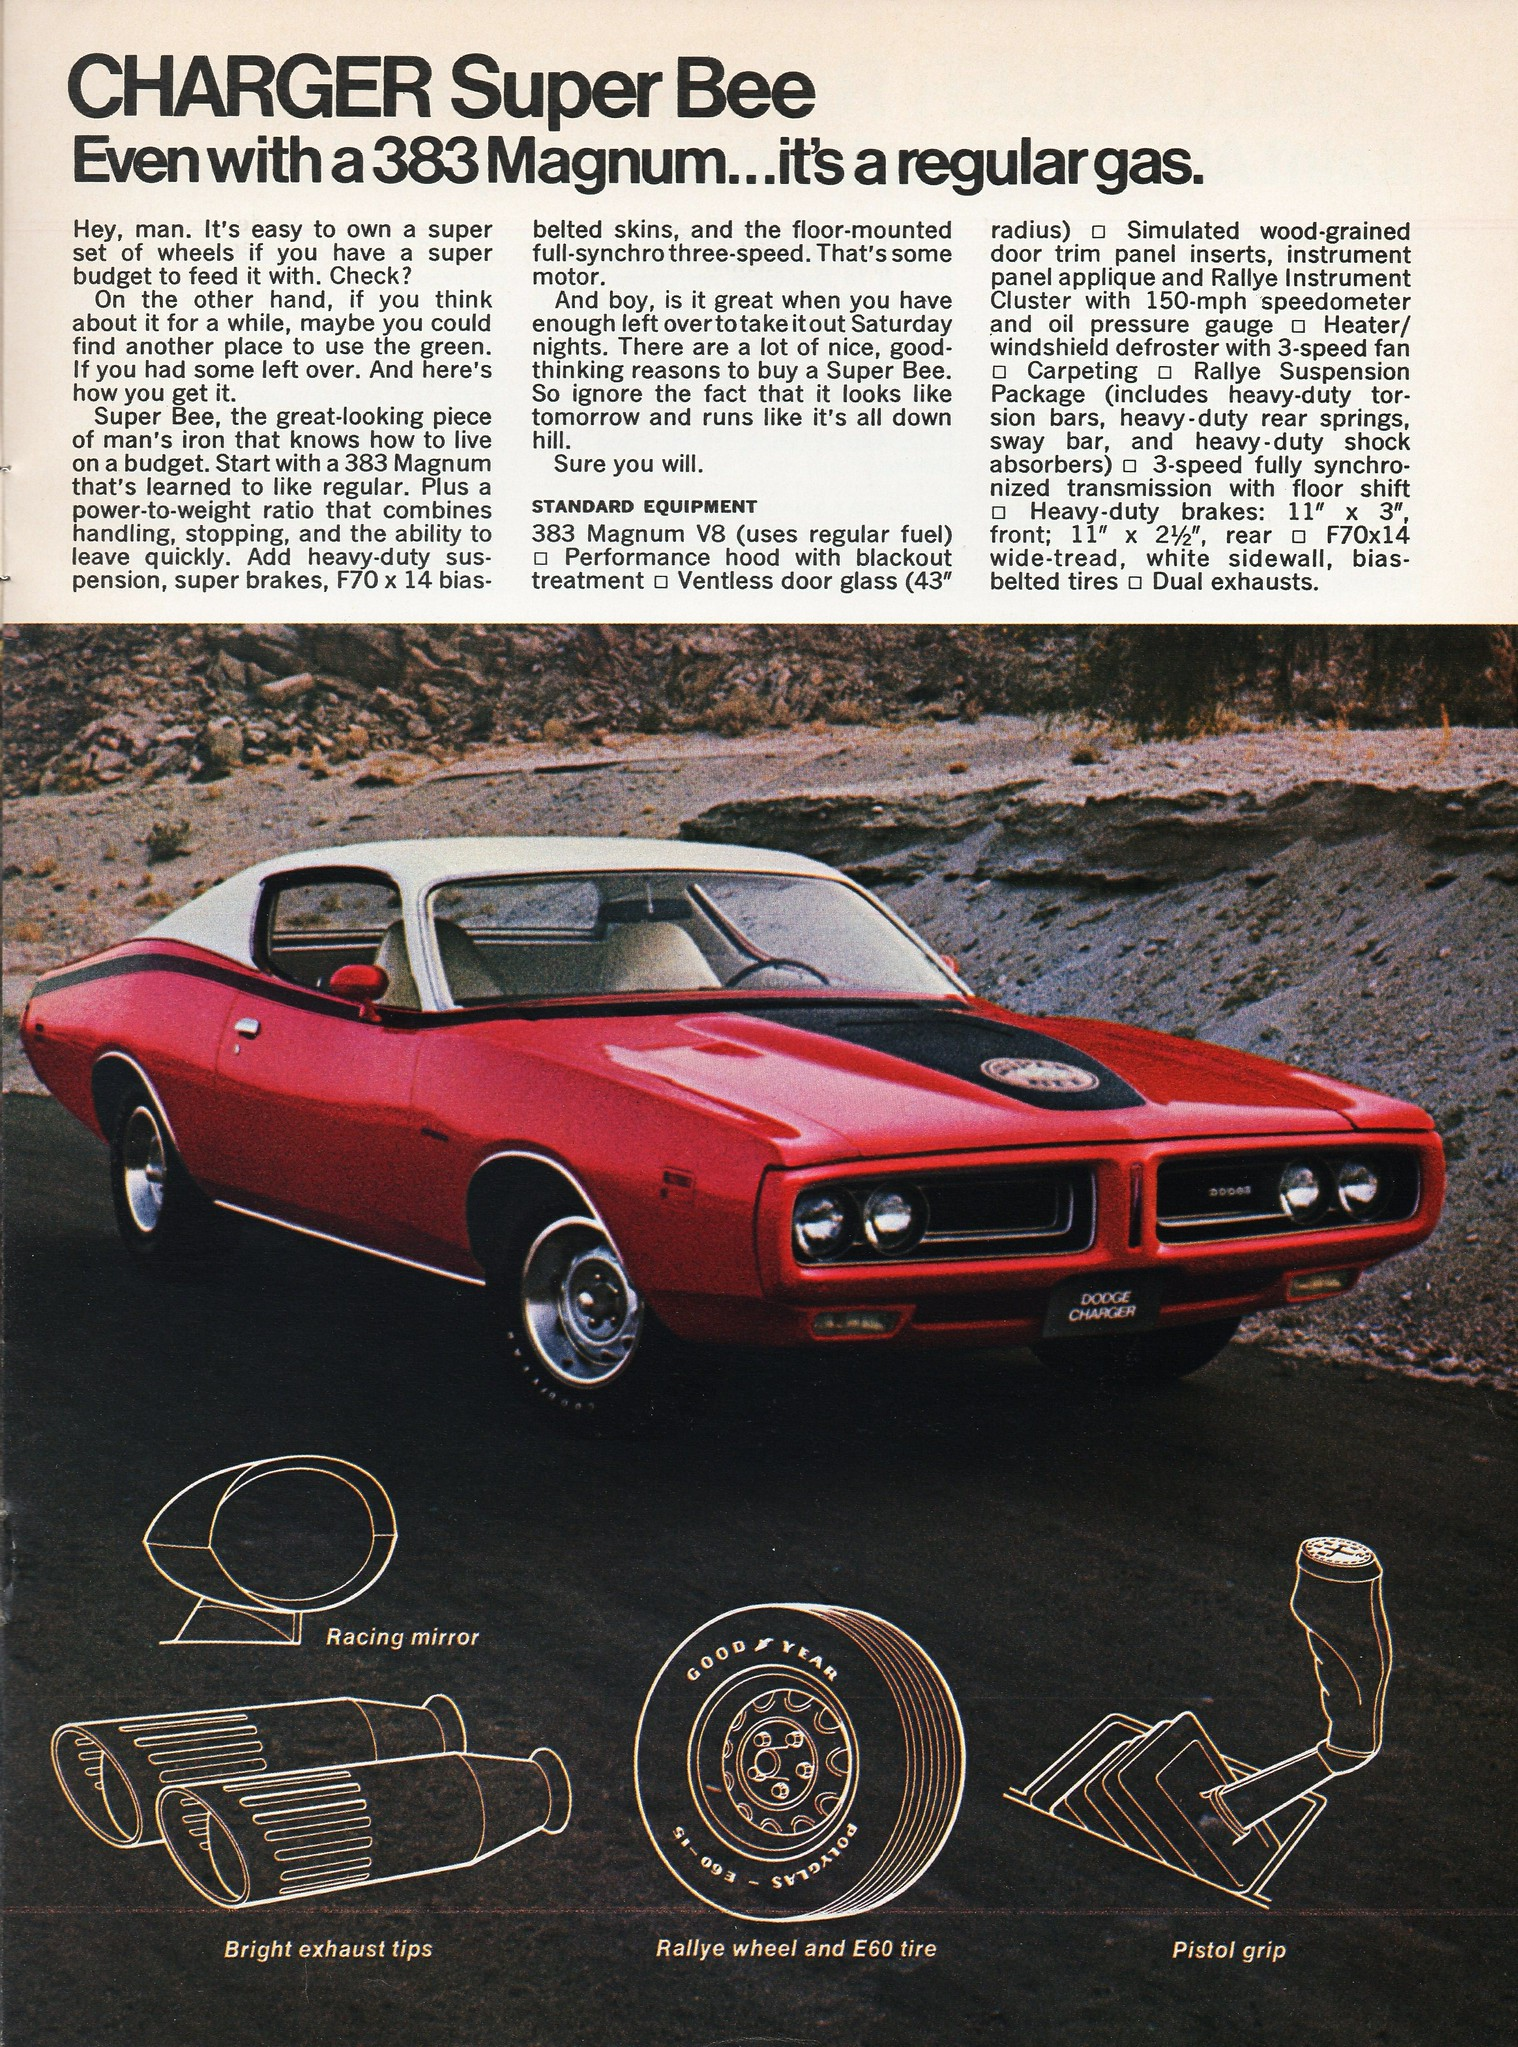 1971 Dodge Charger: 1971 Dodge Charger Super Bee